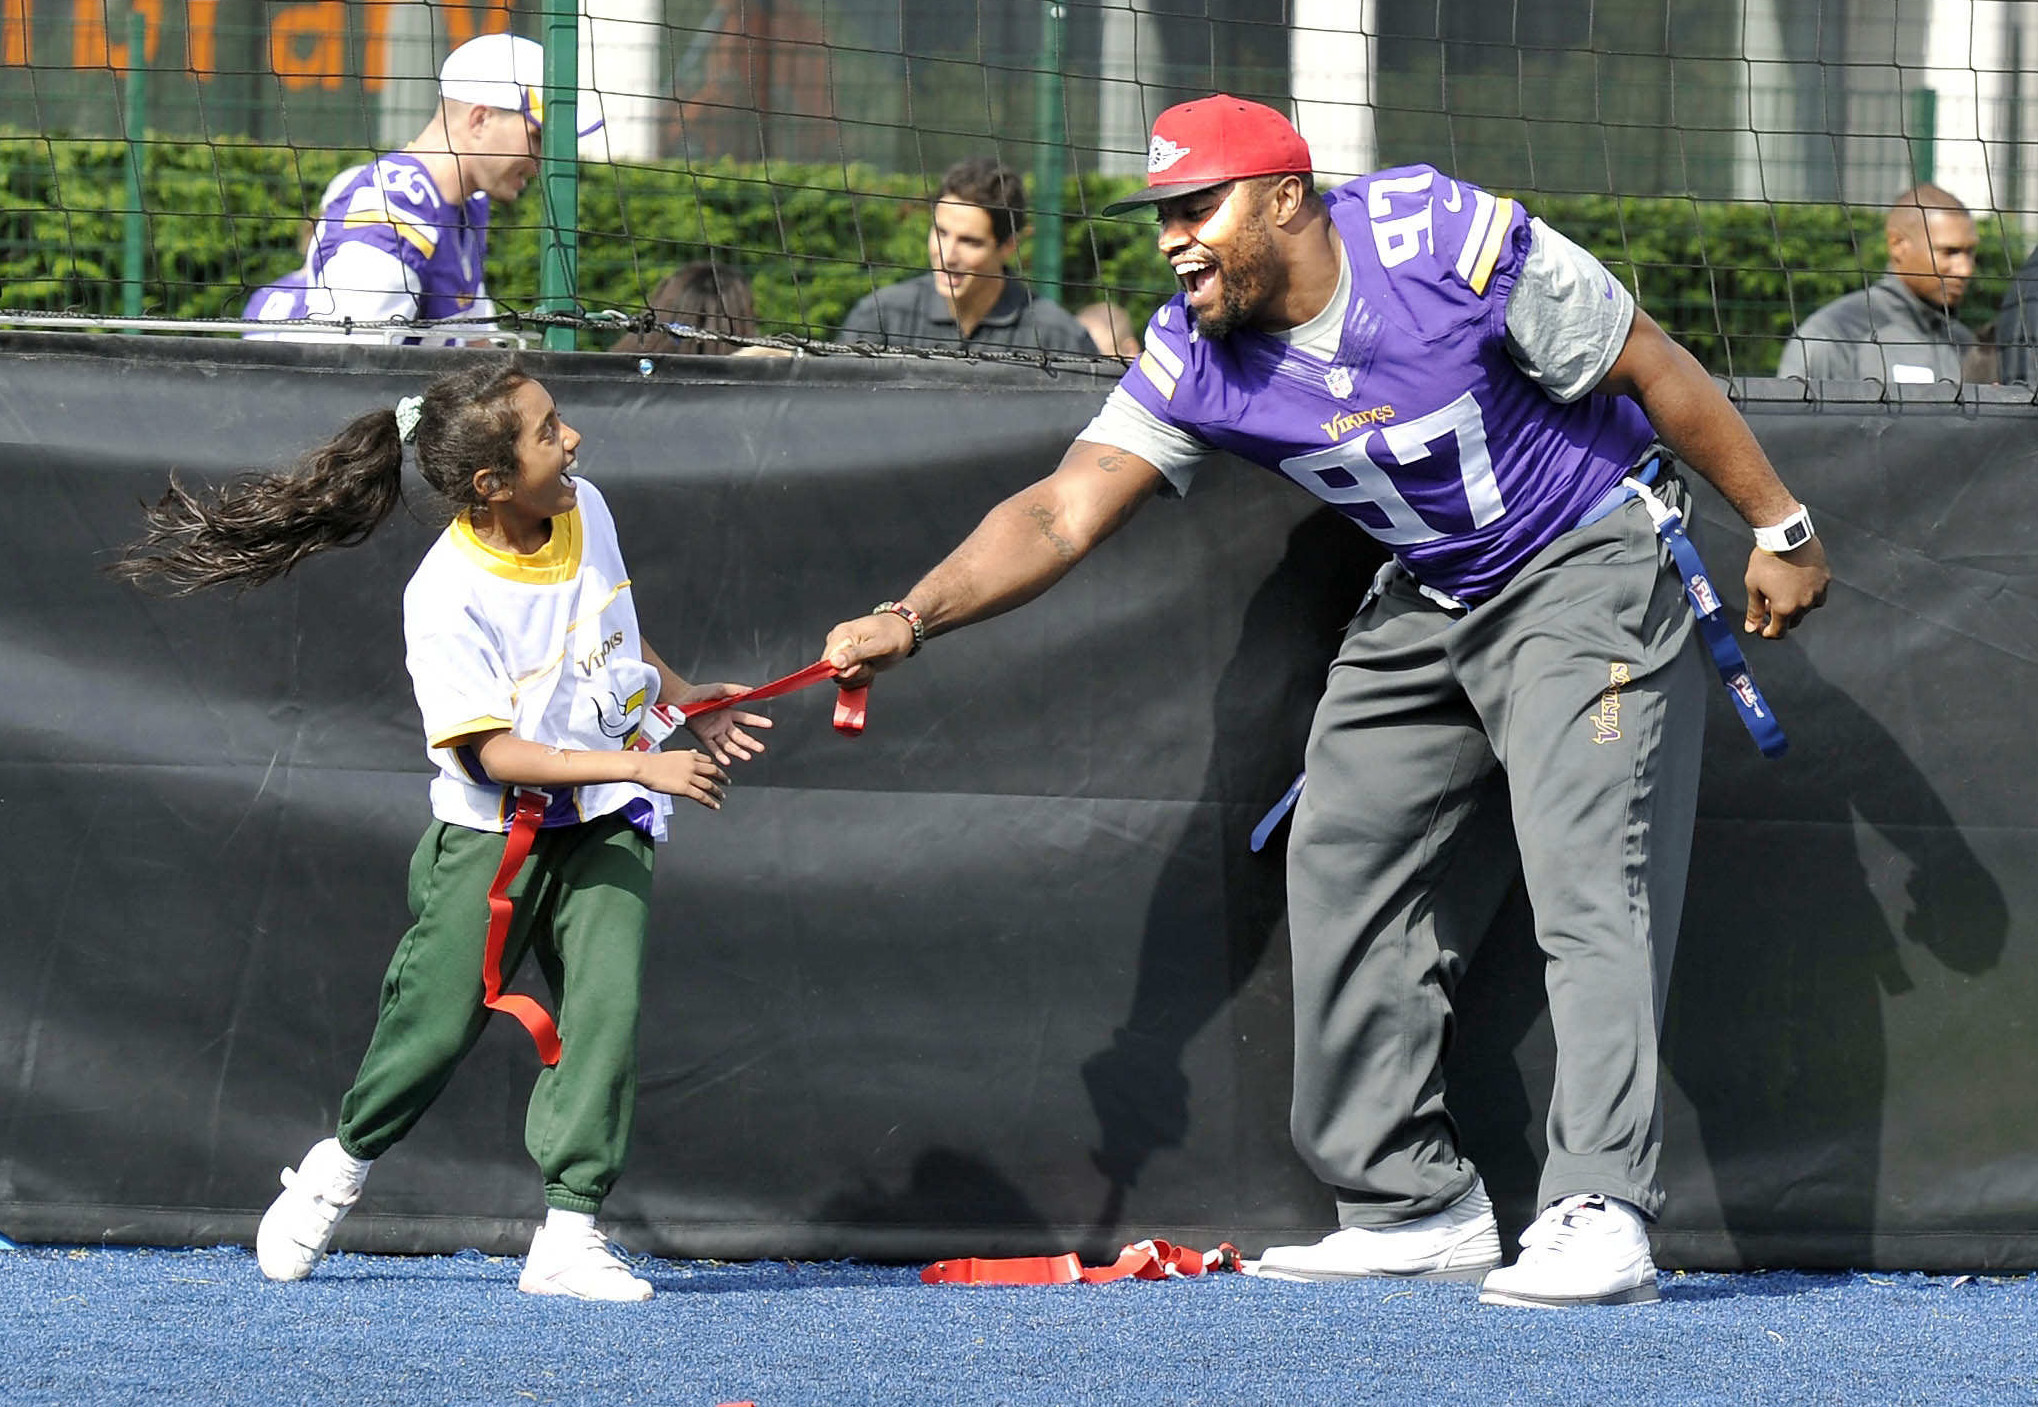 Everson Griffen of the Vikings takes part in a coaching clinic with London children near Wembley Stadium, London, Tuesday Sept. 24, 2013. The Pittsburgh Steelers are to play the Minnesota Vikings in the NFL International Series at Wembley Stadium in London on Sunday, Sept 29